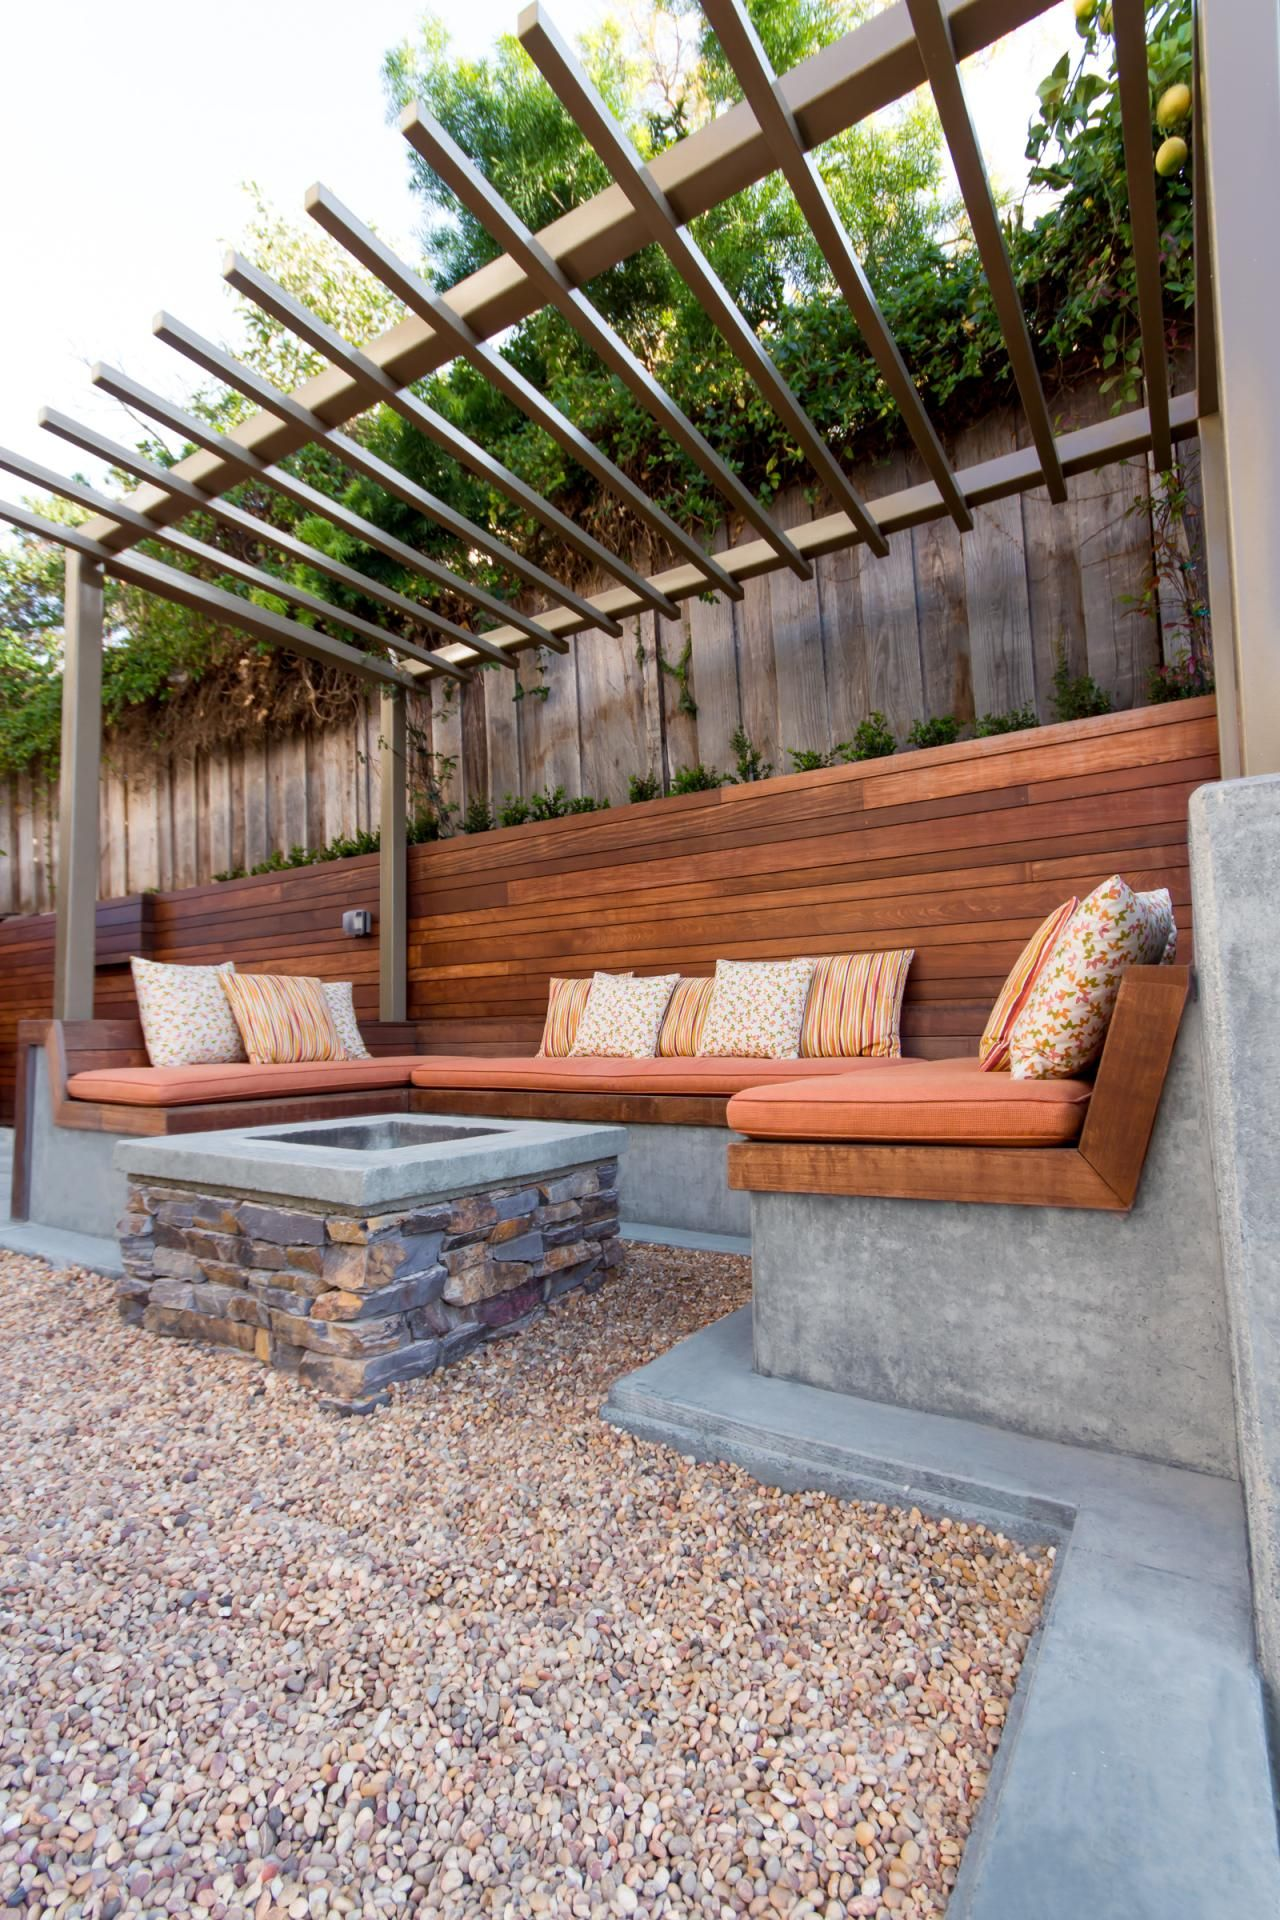 Amazing Backyard Ideas 20 amazing backyard ideas that wont break the bank page 14 of 20 Hgtv Shows You A Contemporary Backyard Seating Area With Built In Benches And A Custom